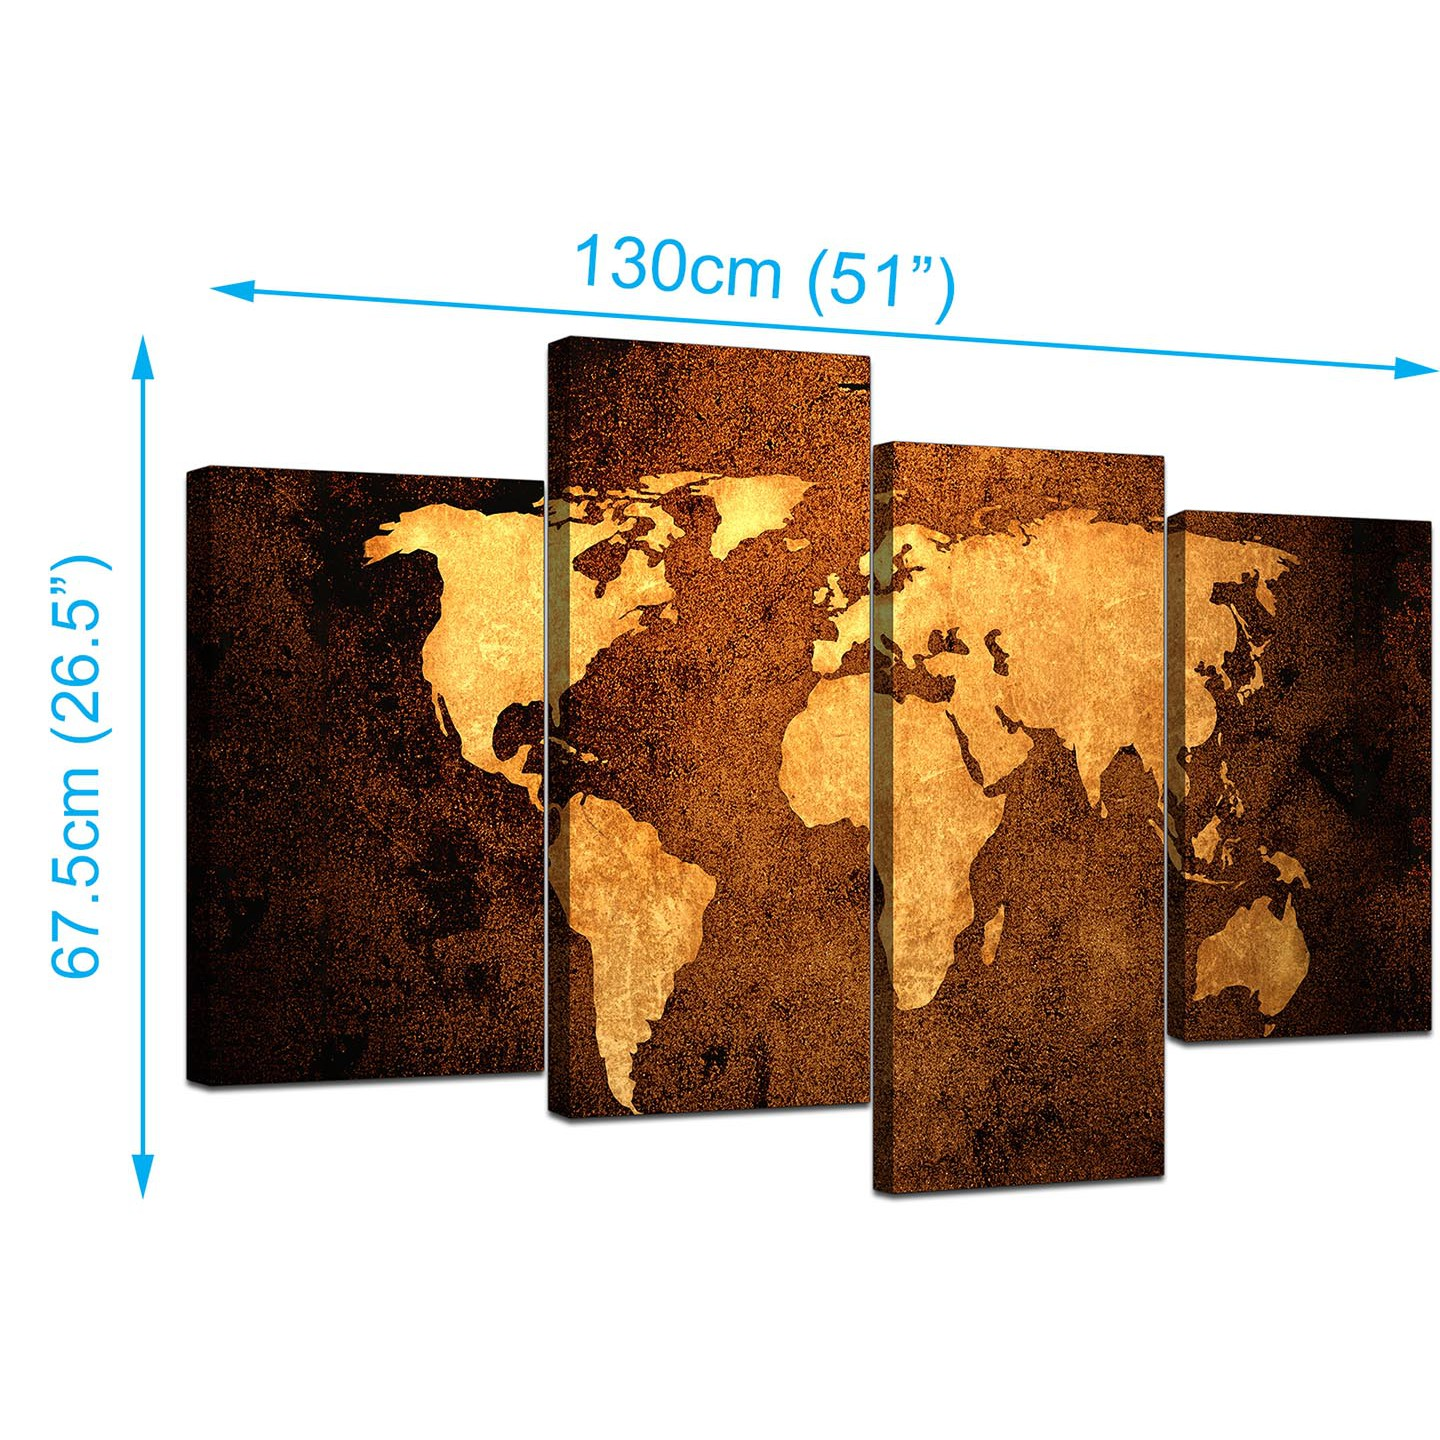 Canvas pictures of a world map in brown for your bedroom display gallery item 3 world map canvas wall art in brown leather effect display gallery item 4 gumiabroncs Images